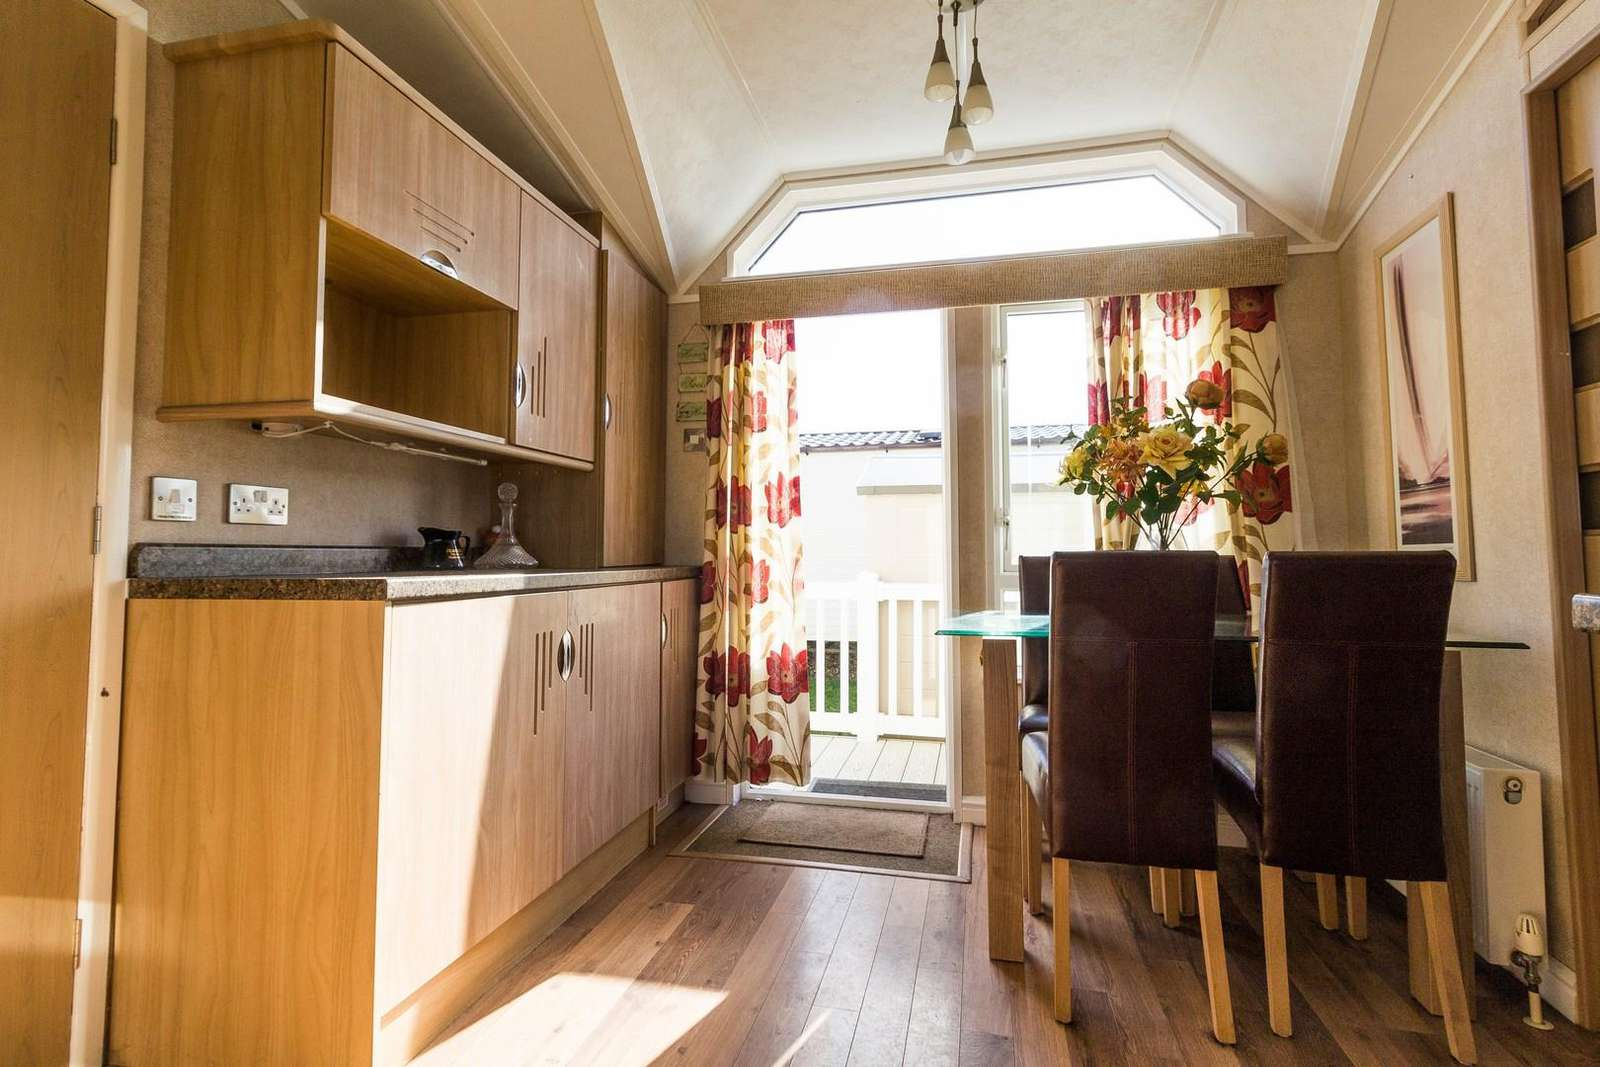 Great kitchen area in this spacious holiday home in Suffolk.